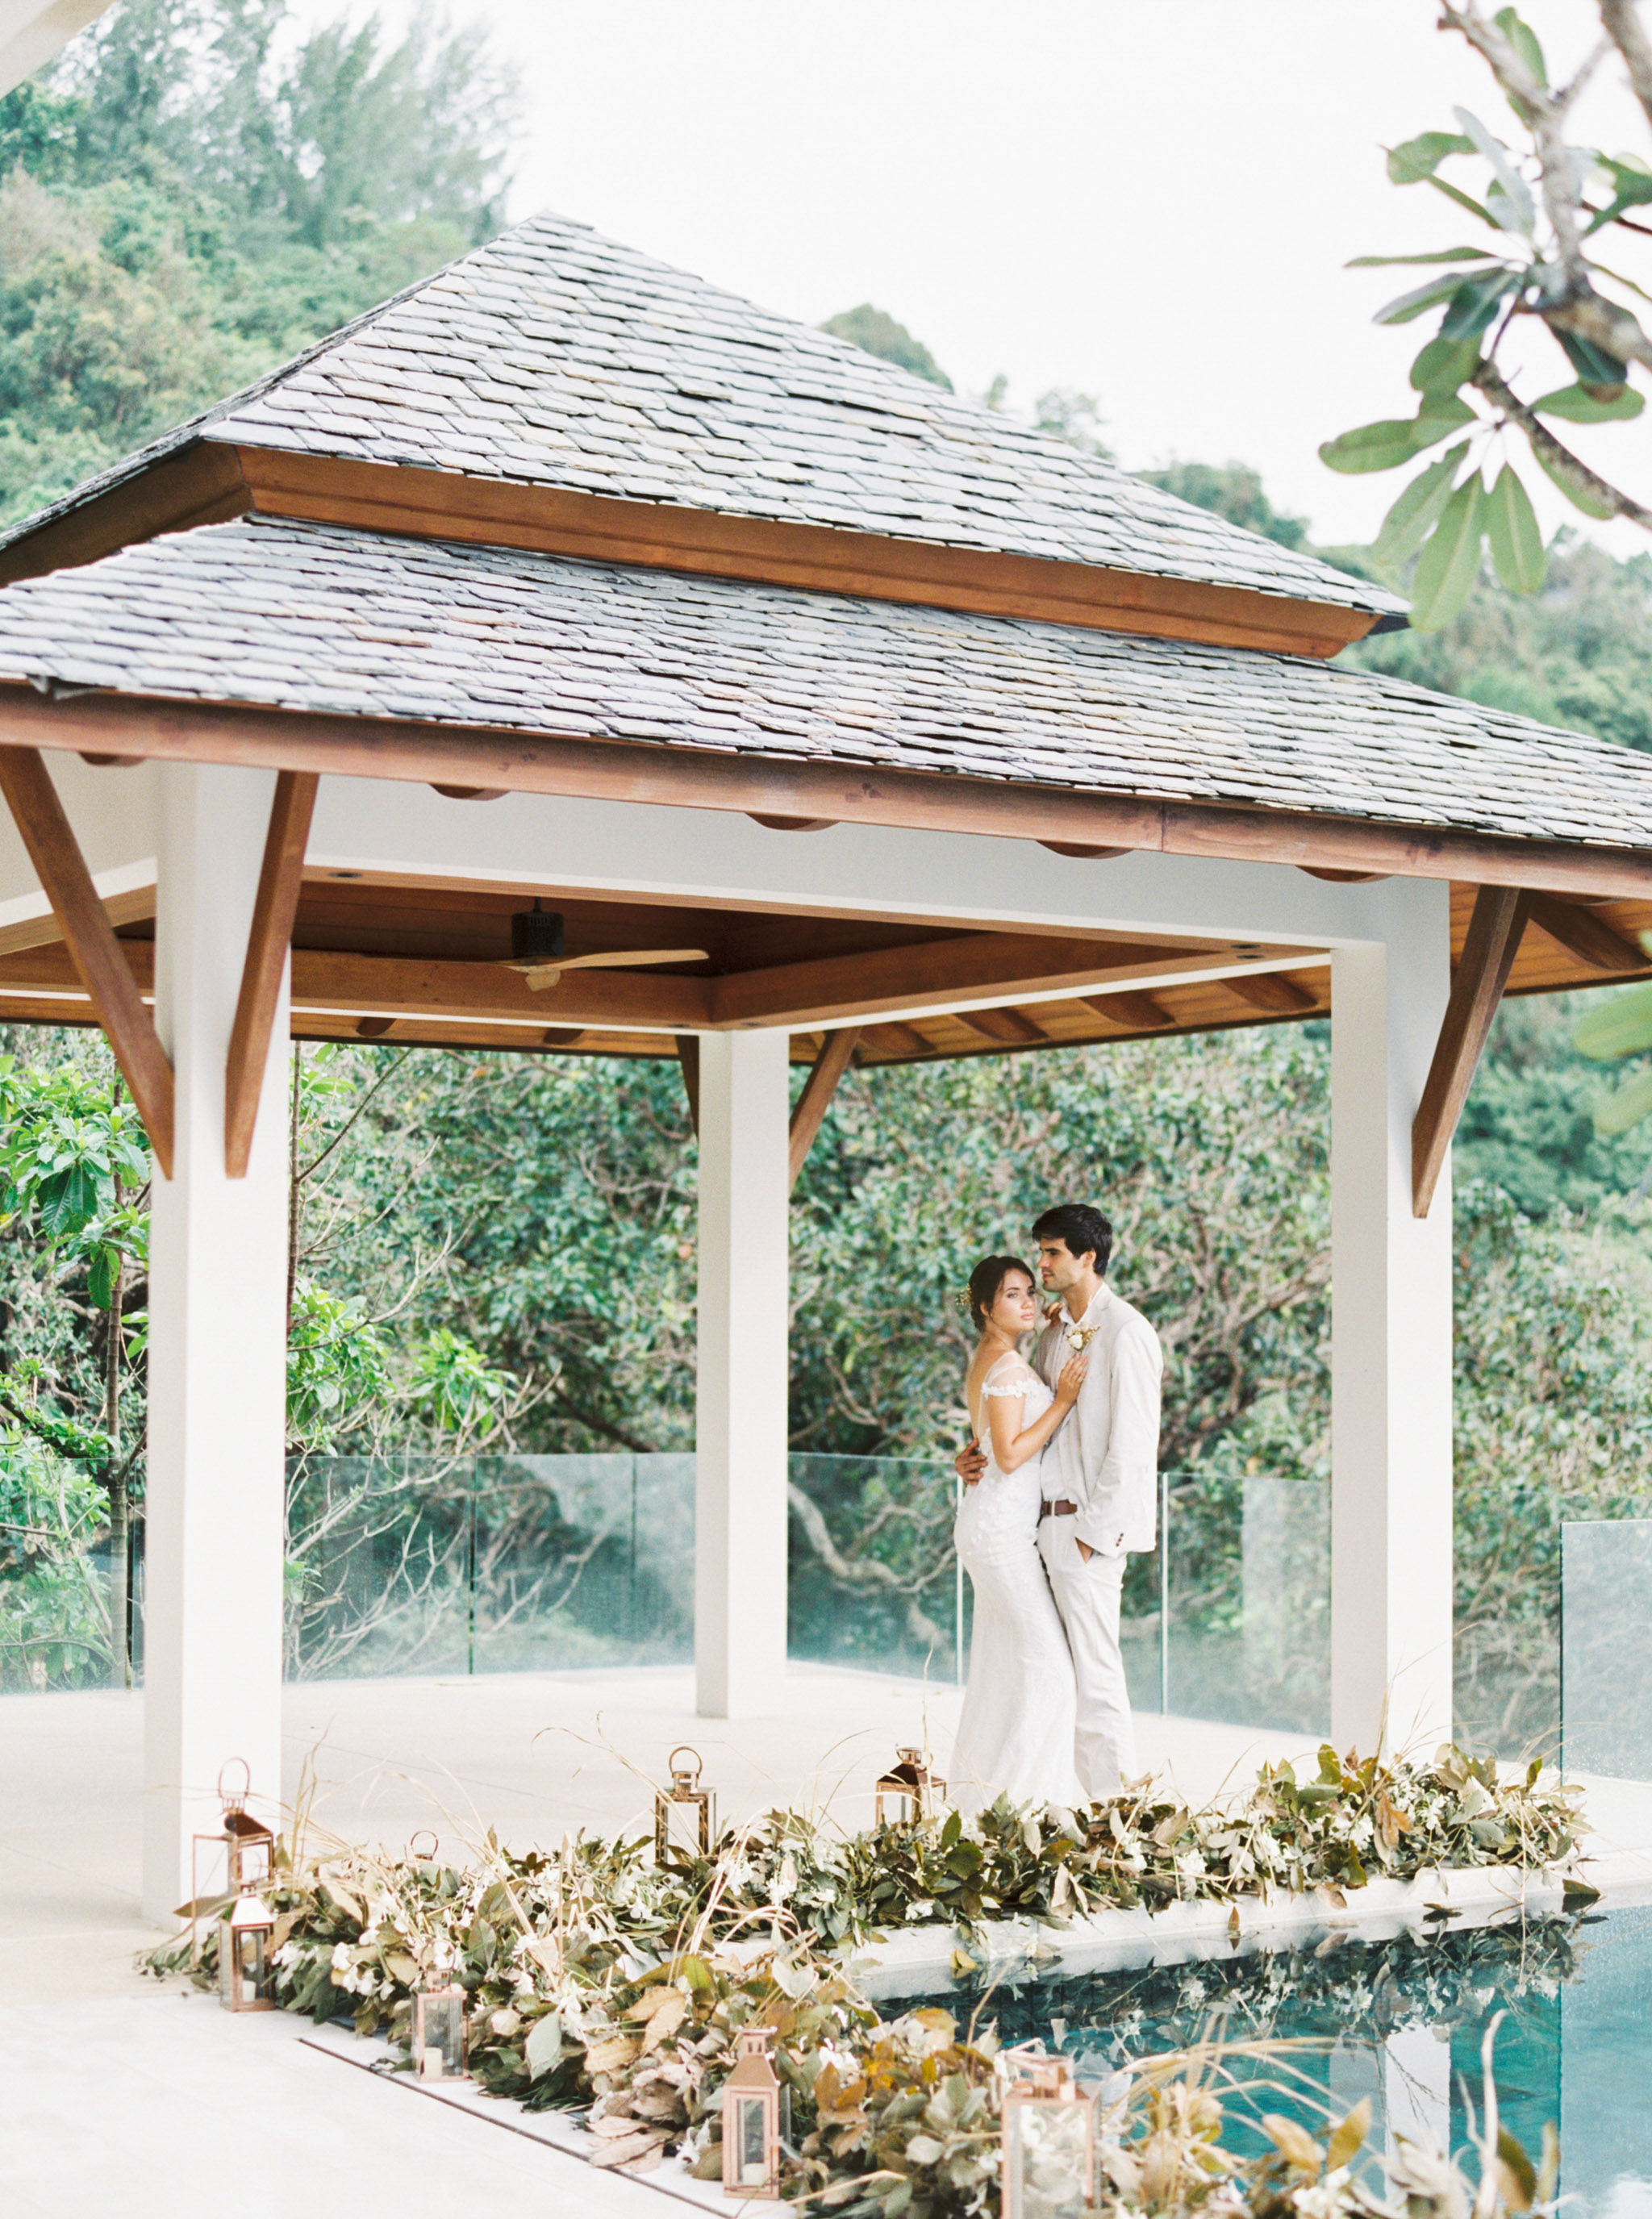 Destination Wedding at The Aquila Luxury Villas in Phuket Thailand Fine Art Film Wedding Photographer Sheri McMahon-00080-80.jpg